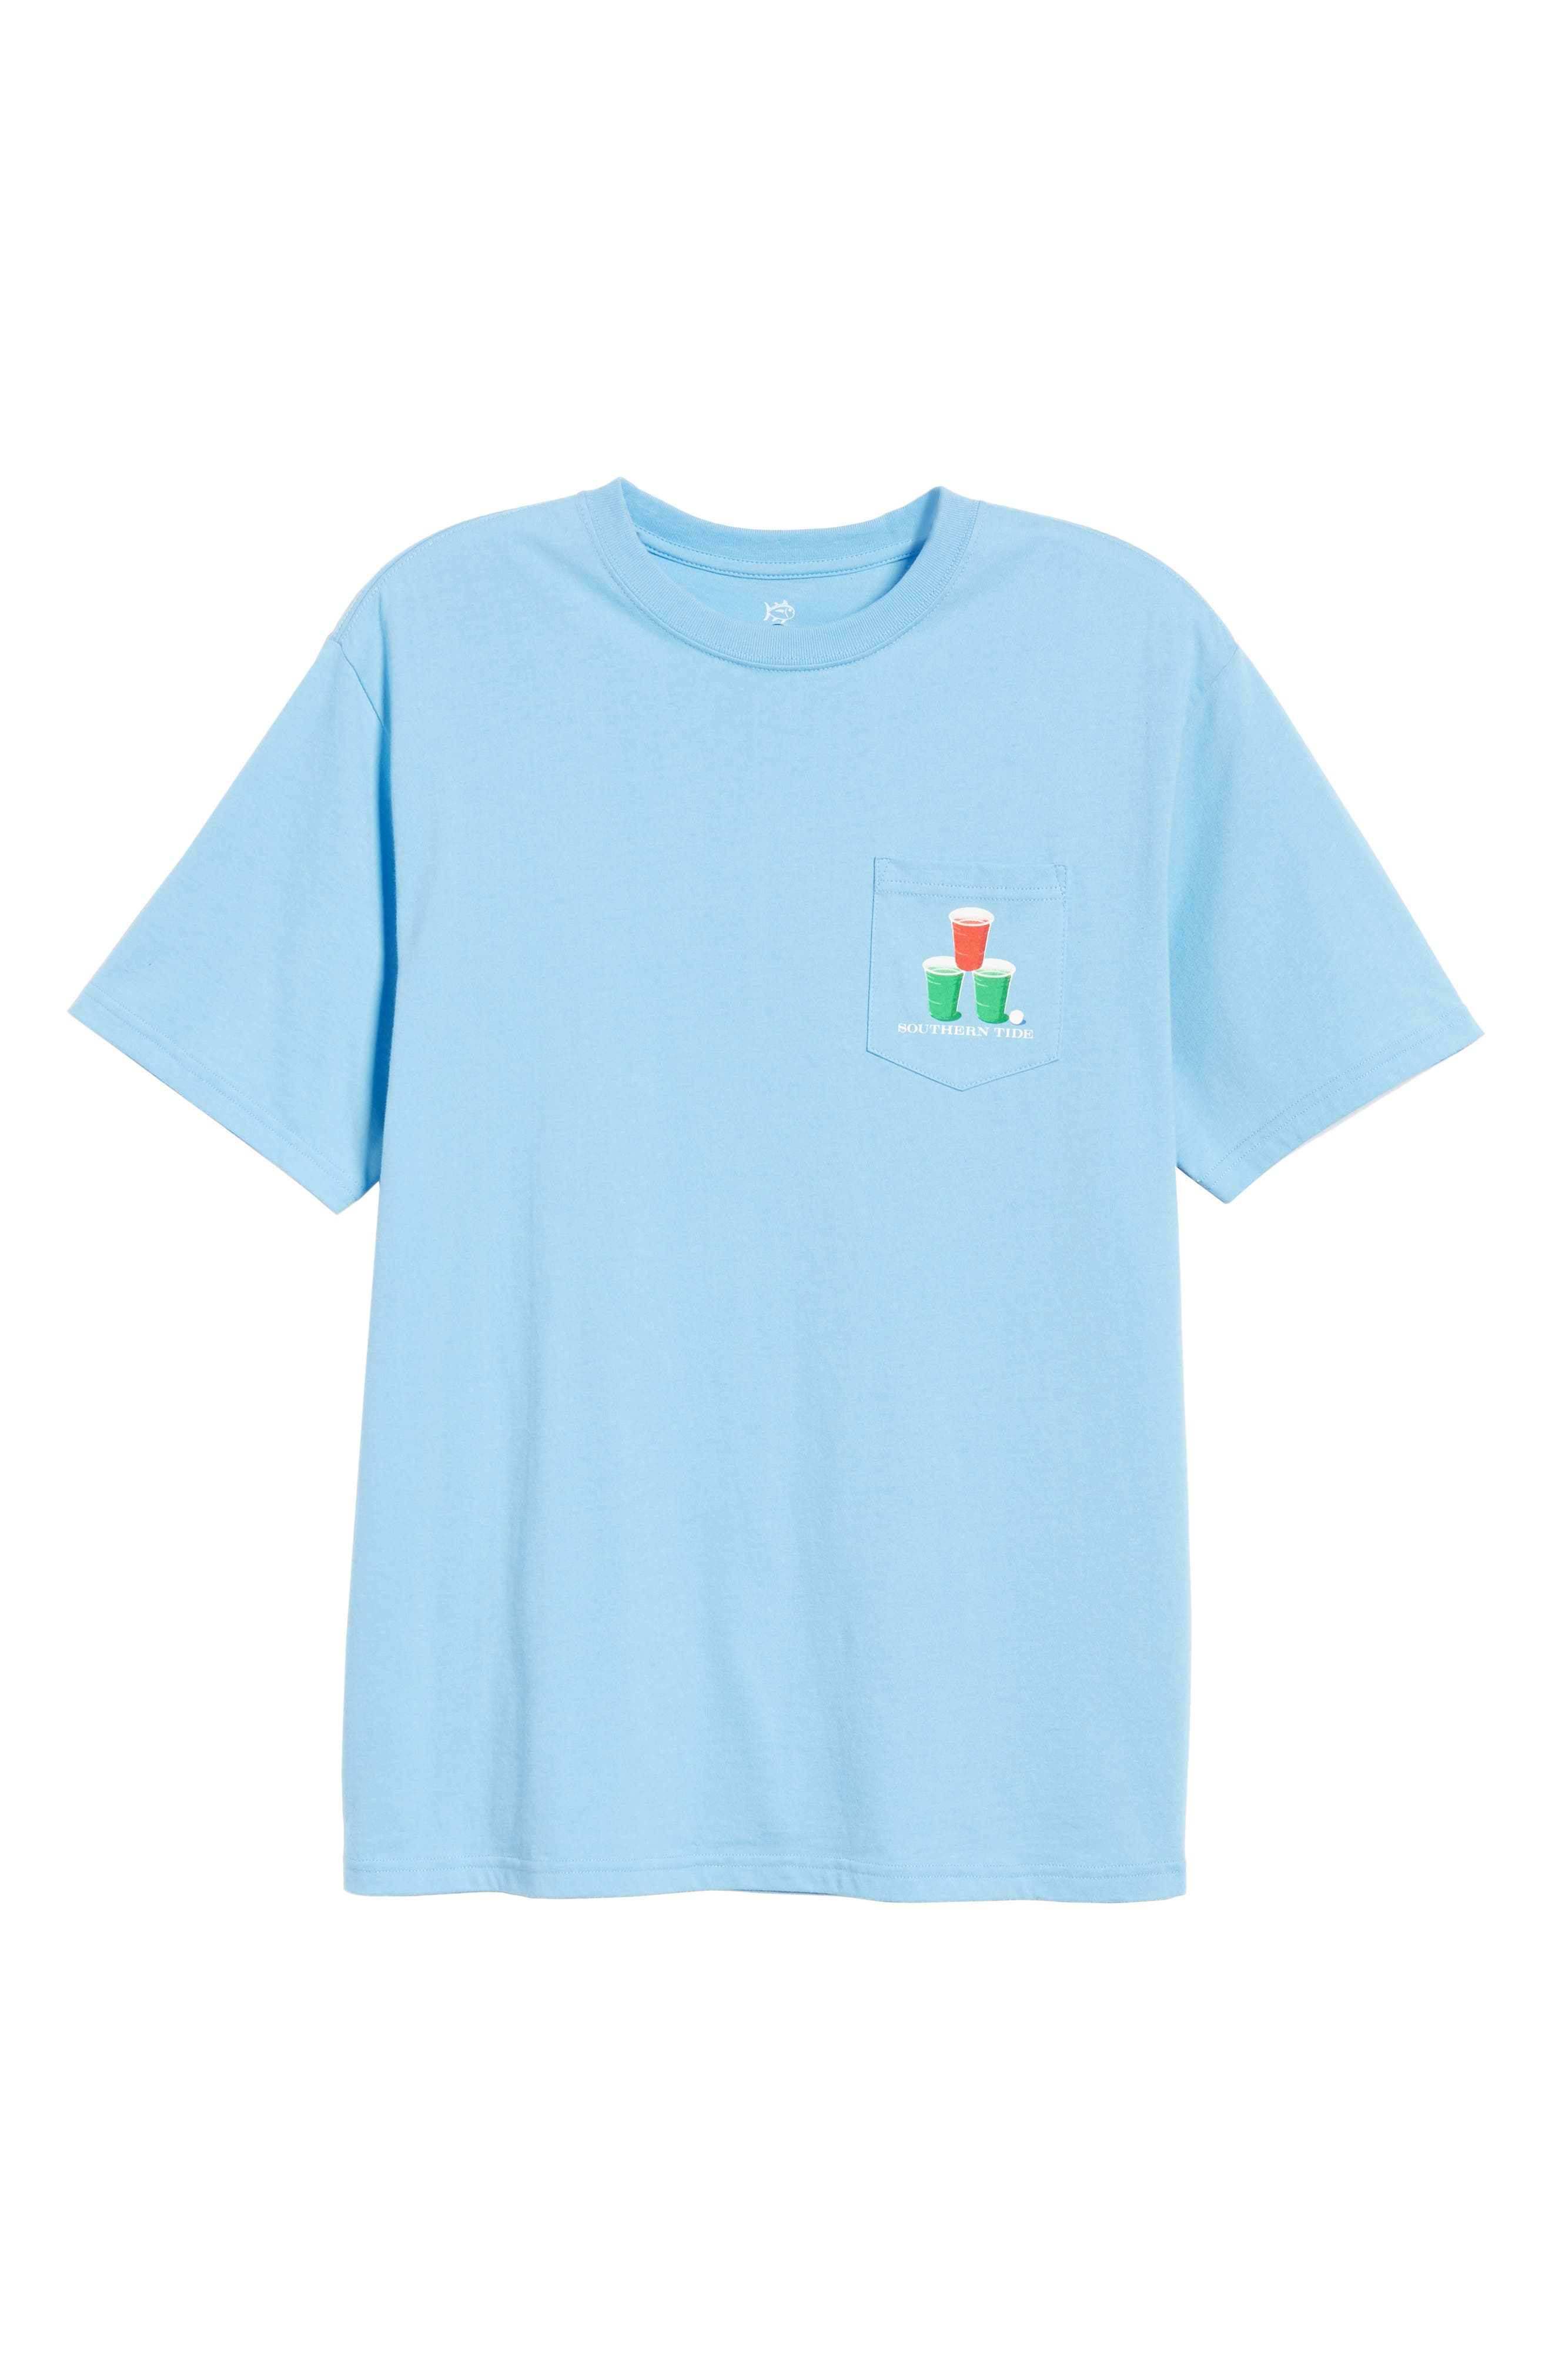 Southern Snowball T-Shirt,                             Alternate thumbnail 6, color,                             392